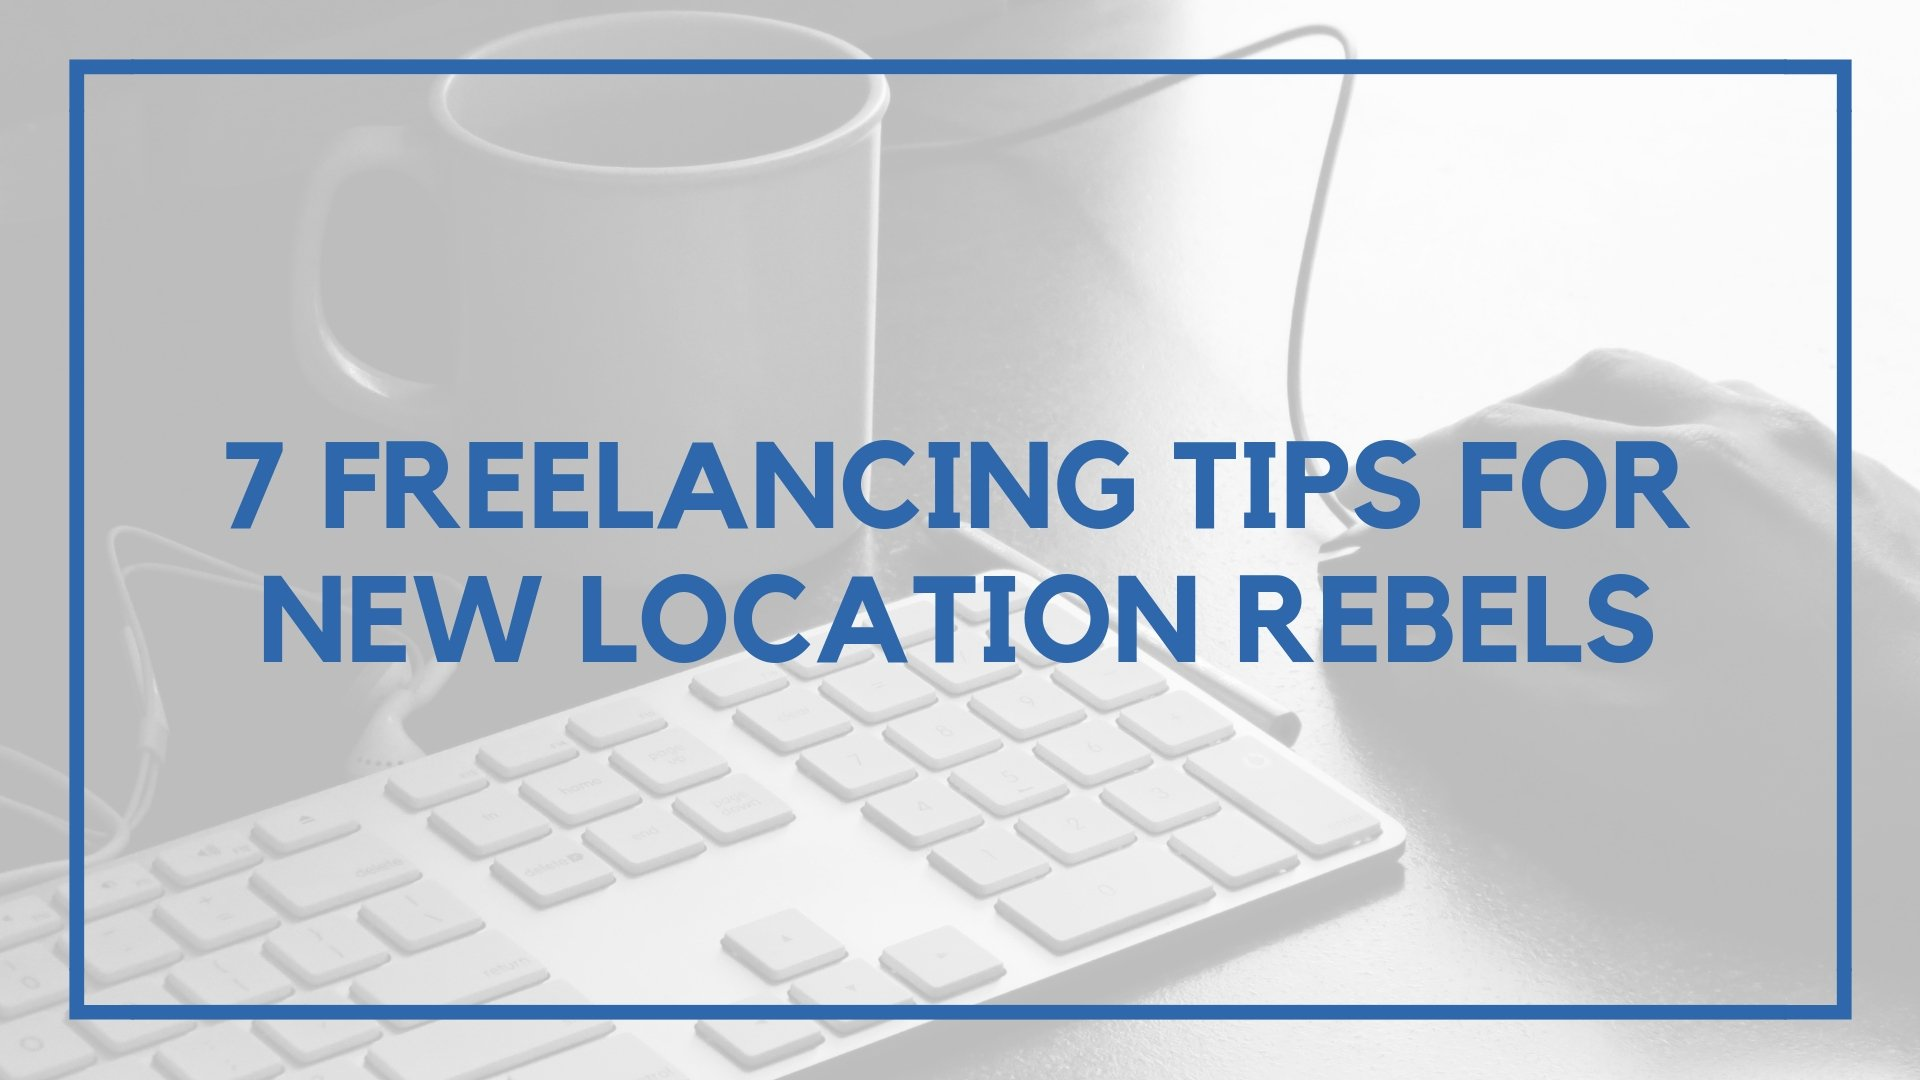 7 Freelancing Tips For New Location Rebels